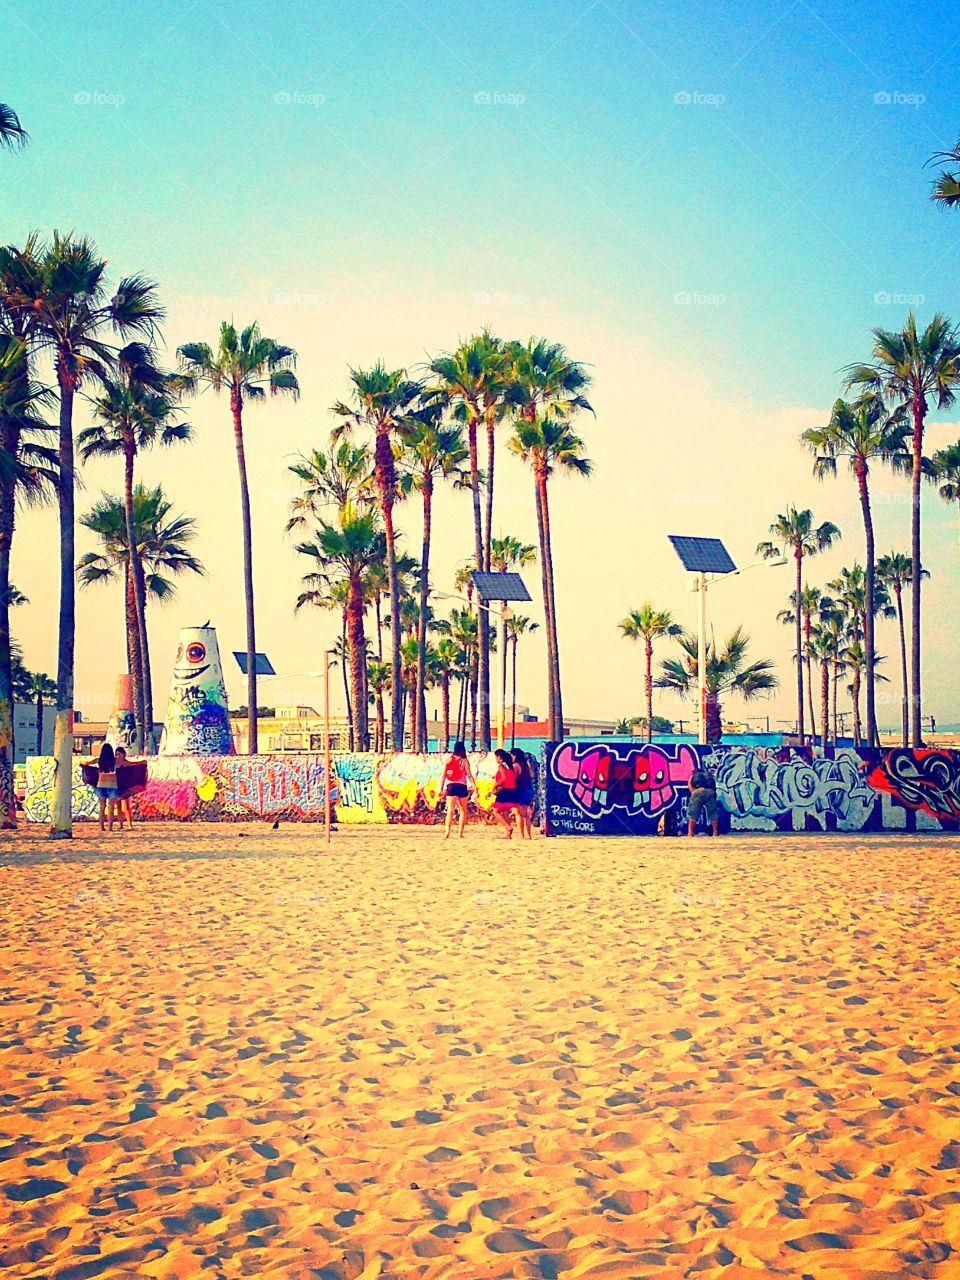 Venice Beach, California graffiti